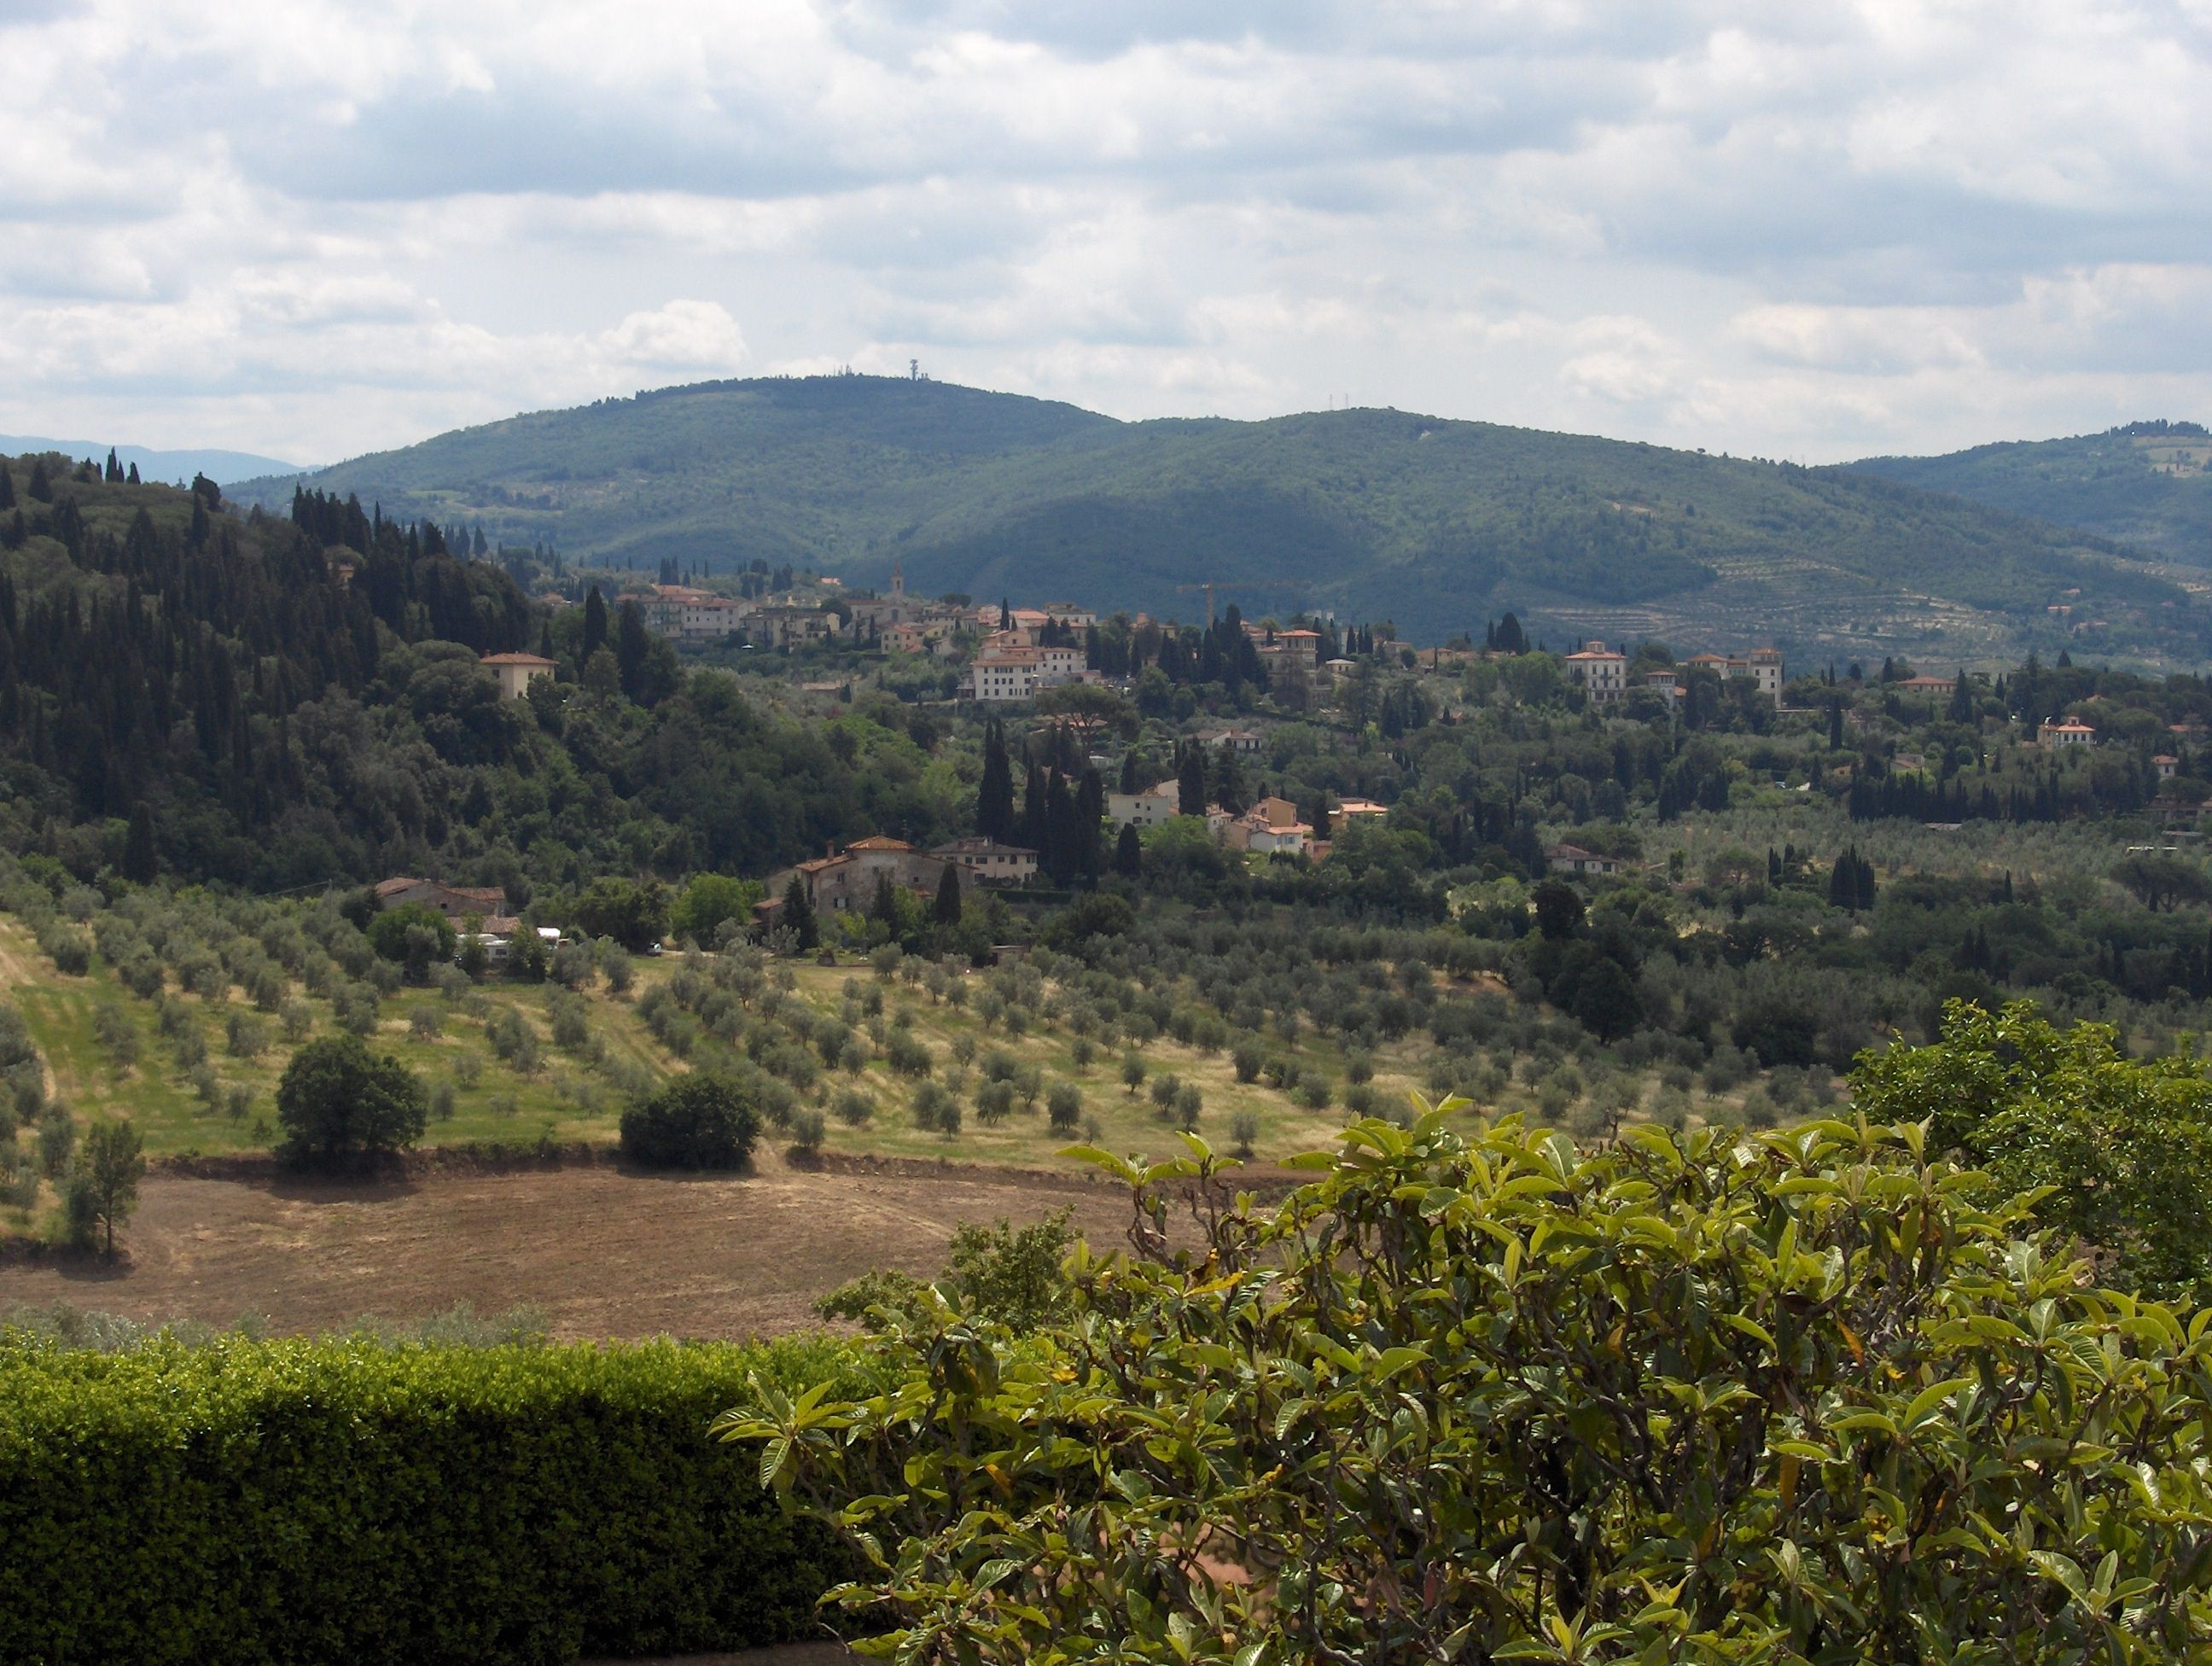 More Tuscany...love the grapevines!  Love the wine!